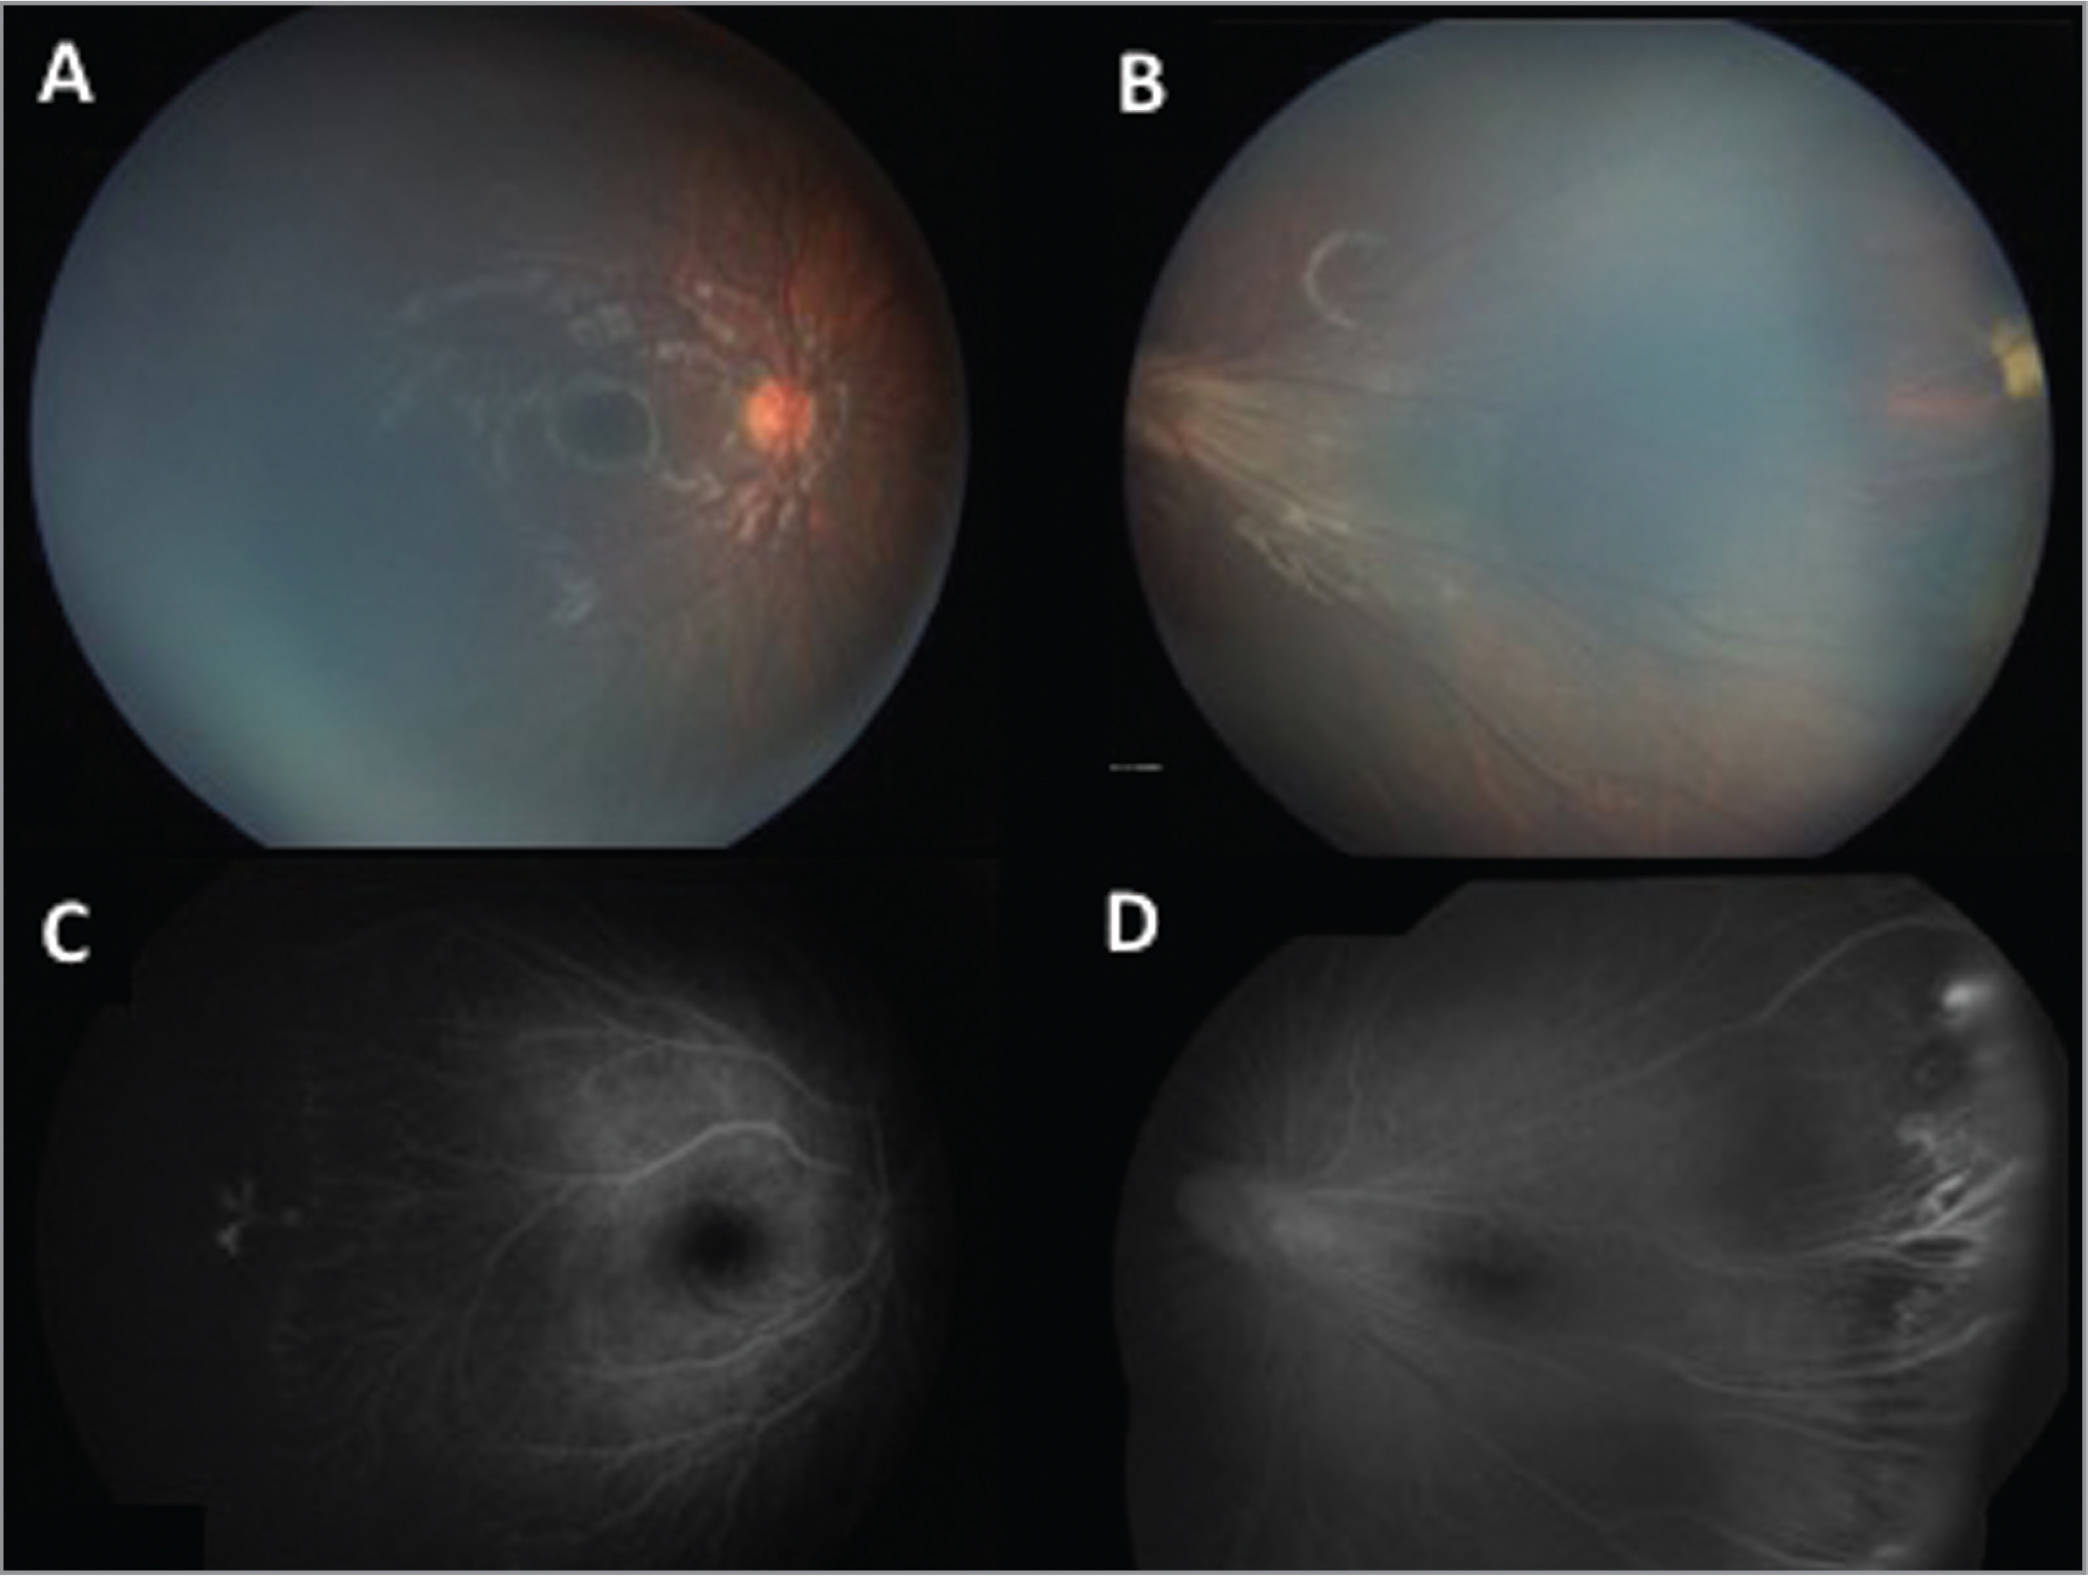 Color fundus images and late-phase fluorescein angiography of the proband before treatment. (A) Right eye: Color fundus image showing a relatively normal posterior pole. (B) Left eye: Color fundus image showing straightening of the retinal vasculature and temporal drag of the nerve and macula structures. (C) Right eye: Fluorescein angiography with an avascular nonperfused temporal retina and leakage. (D) Left eye: Fluorescein angiography with an avascular temporal retina and leakage.